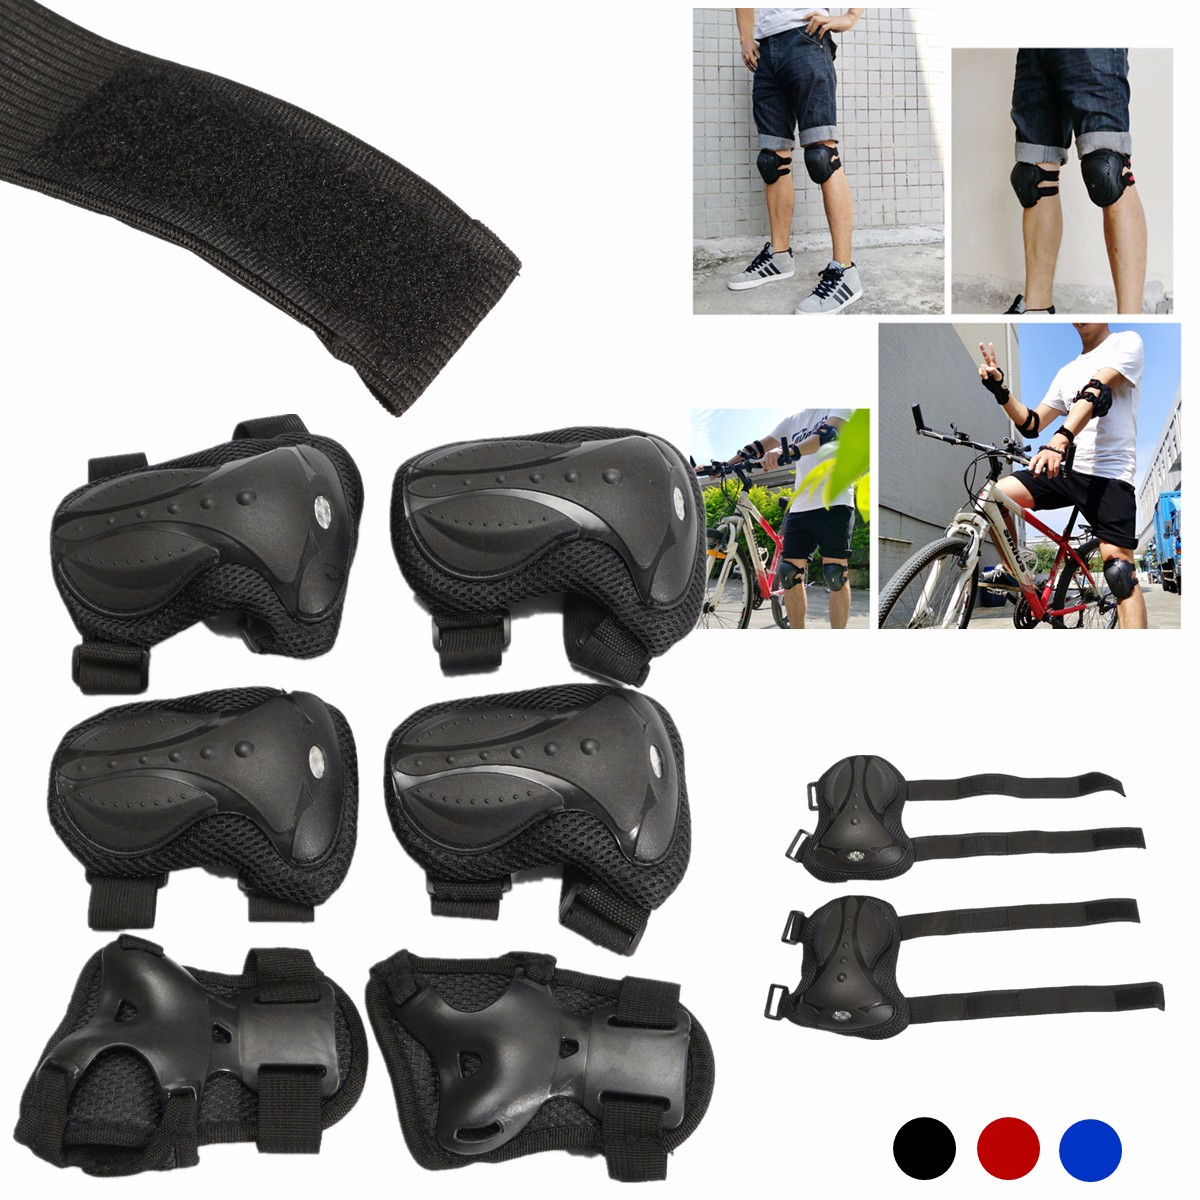 6pcs/set Adult Sports Safety Set Knee Elbow Pads Protective Kneepads Protection For Scooter Cycling Roller Skating